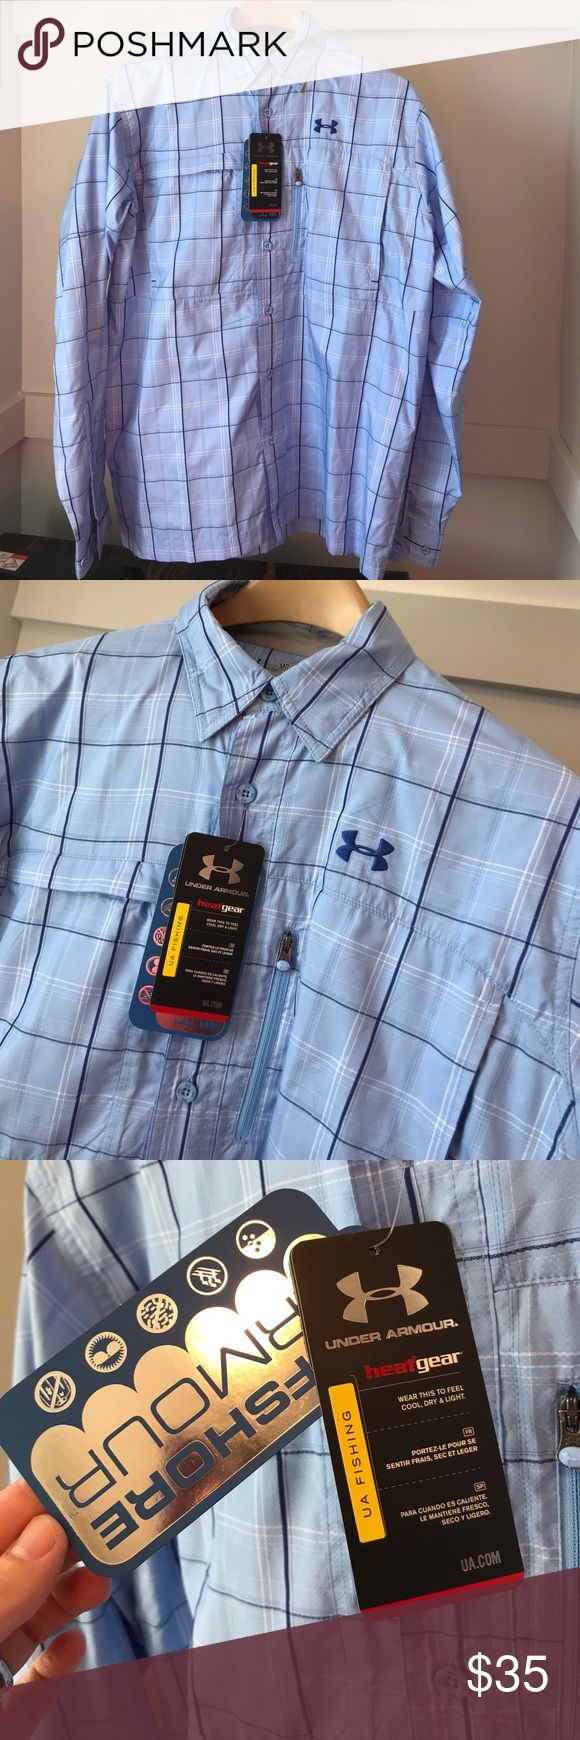 Men's under Armour offshore medium fishing shirt New!  New with tags.  Excellent condition! Under Armour offshore.  Long sleeve.  Light blue.  Similar to UNC colors.  Men's size medium. Heat gear. Lightweight. Button down shirt. Casual Under Armour Shirts Casual Button Down Shirts